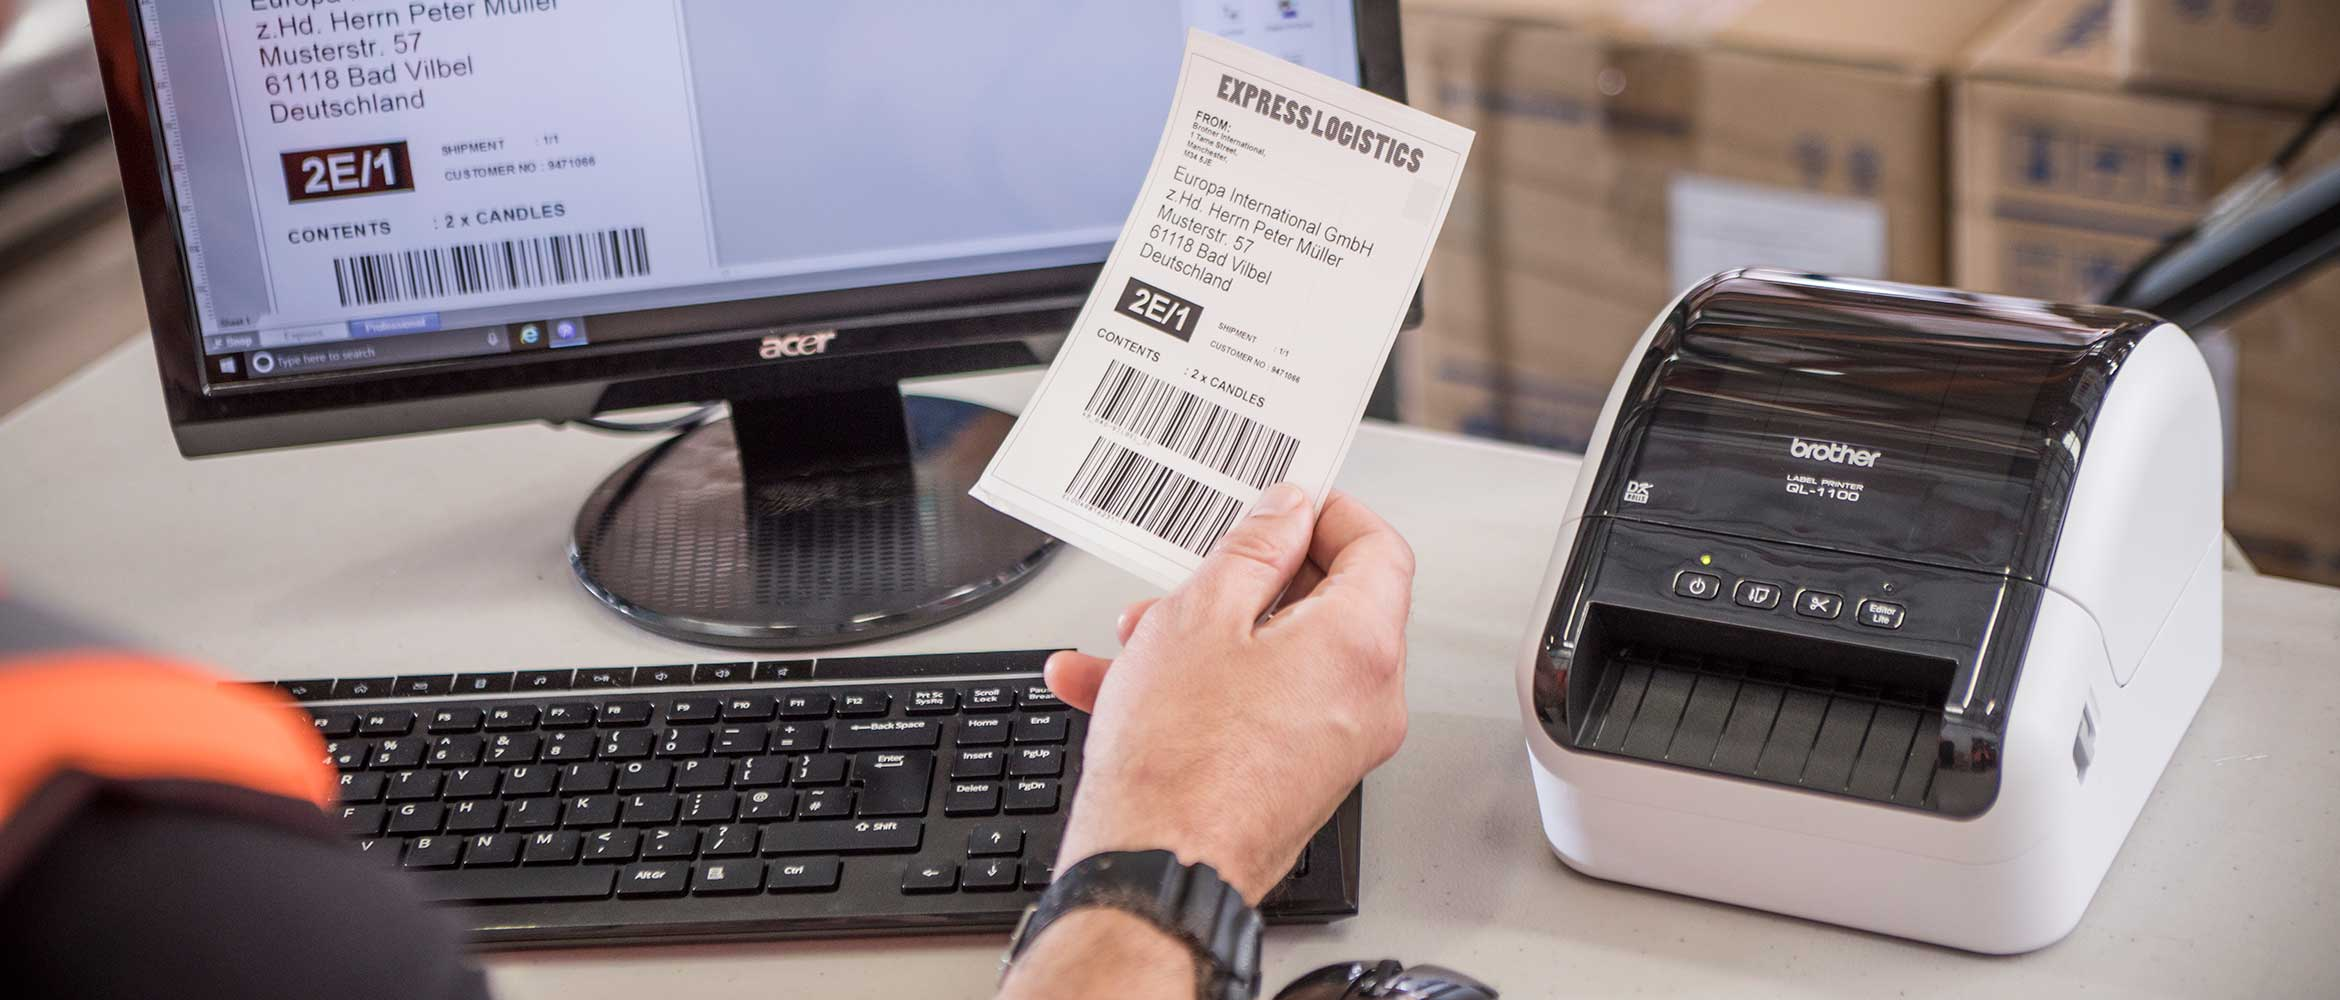 Brother QL-1100 desktop label printer on desk with person sat at desk holding label